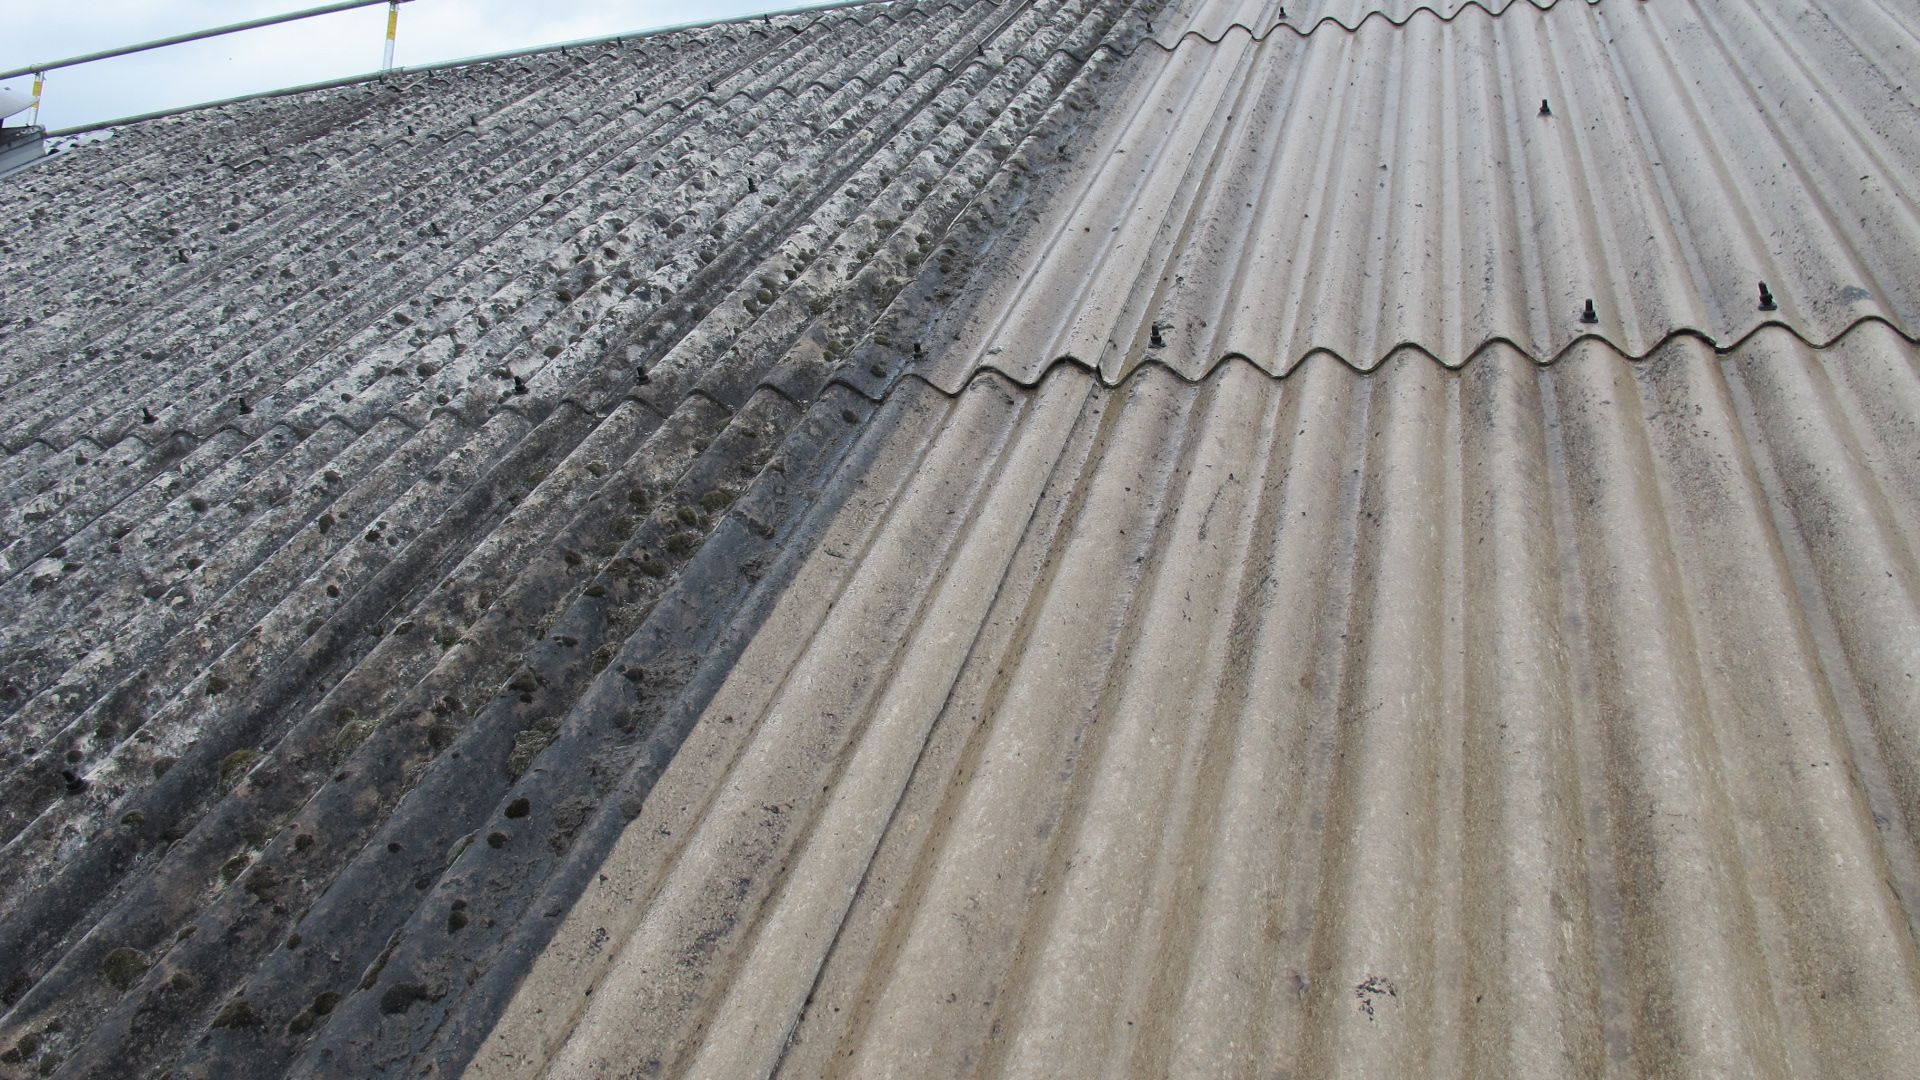 Asbestos Roof Cleaning Video Showing Hse Closed Box Method Roof Cleaning Asbestos Cleaning Videos